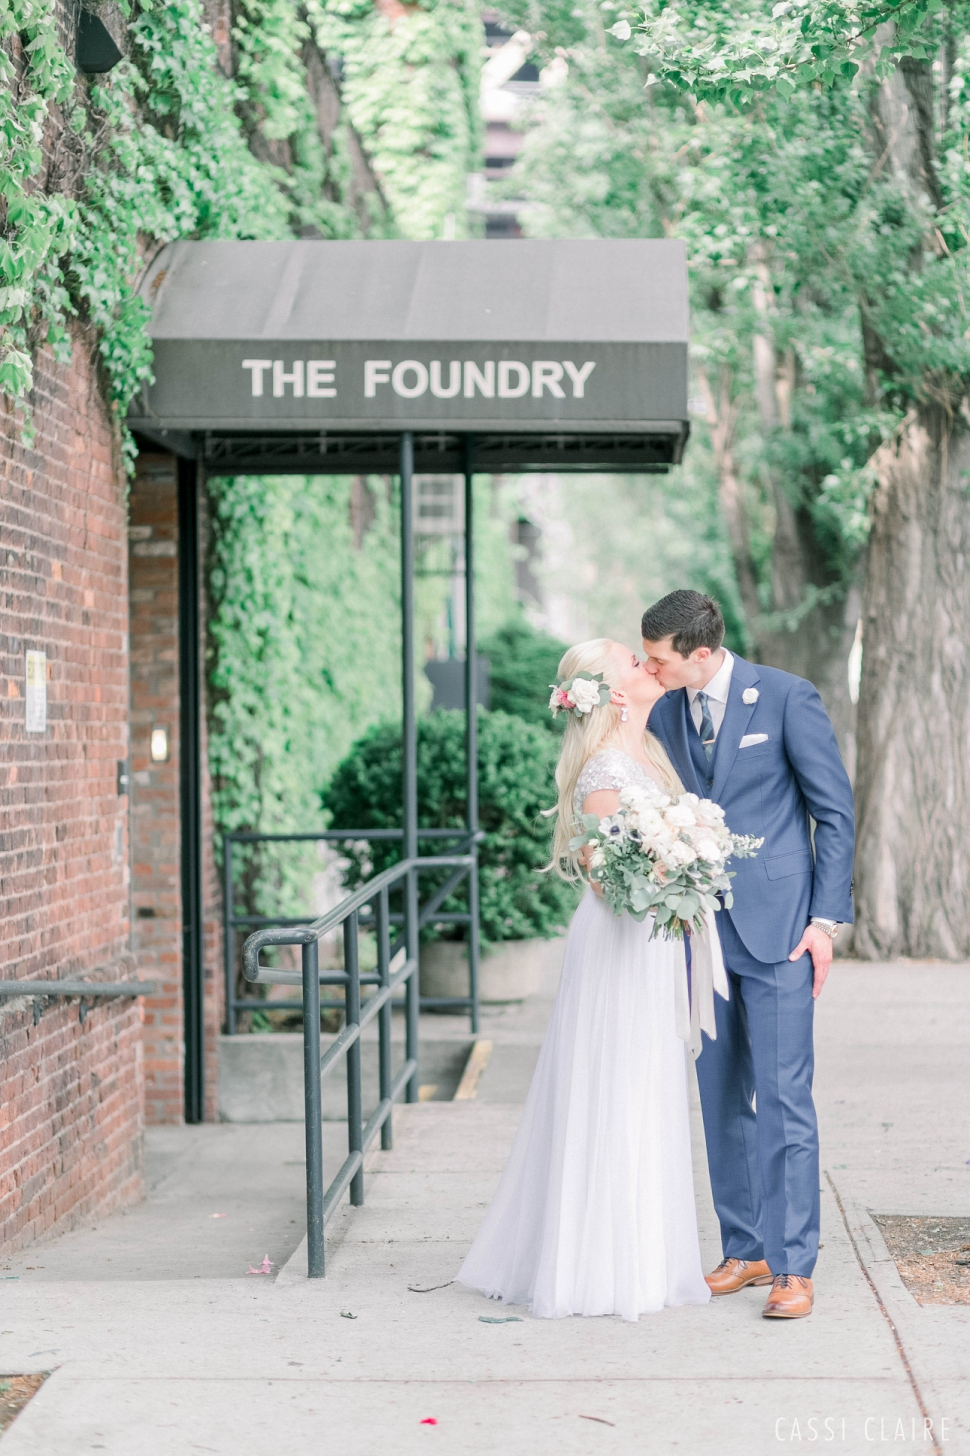 The-Foundry-LIC-Wedding_CassiClaire_01.jpg